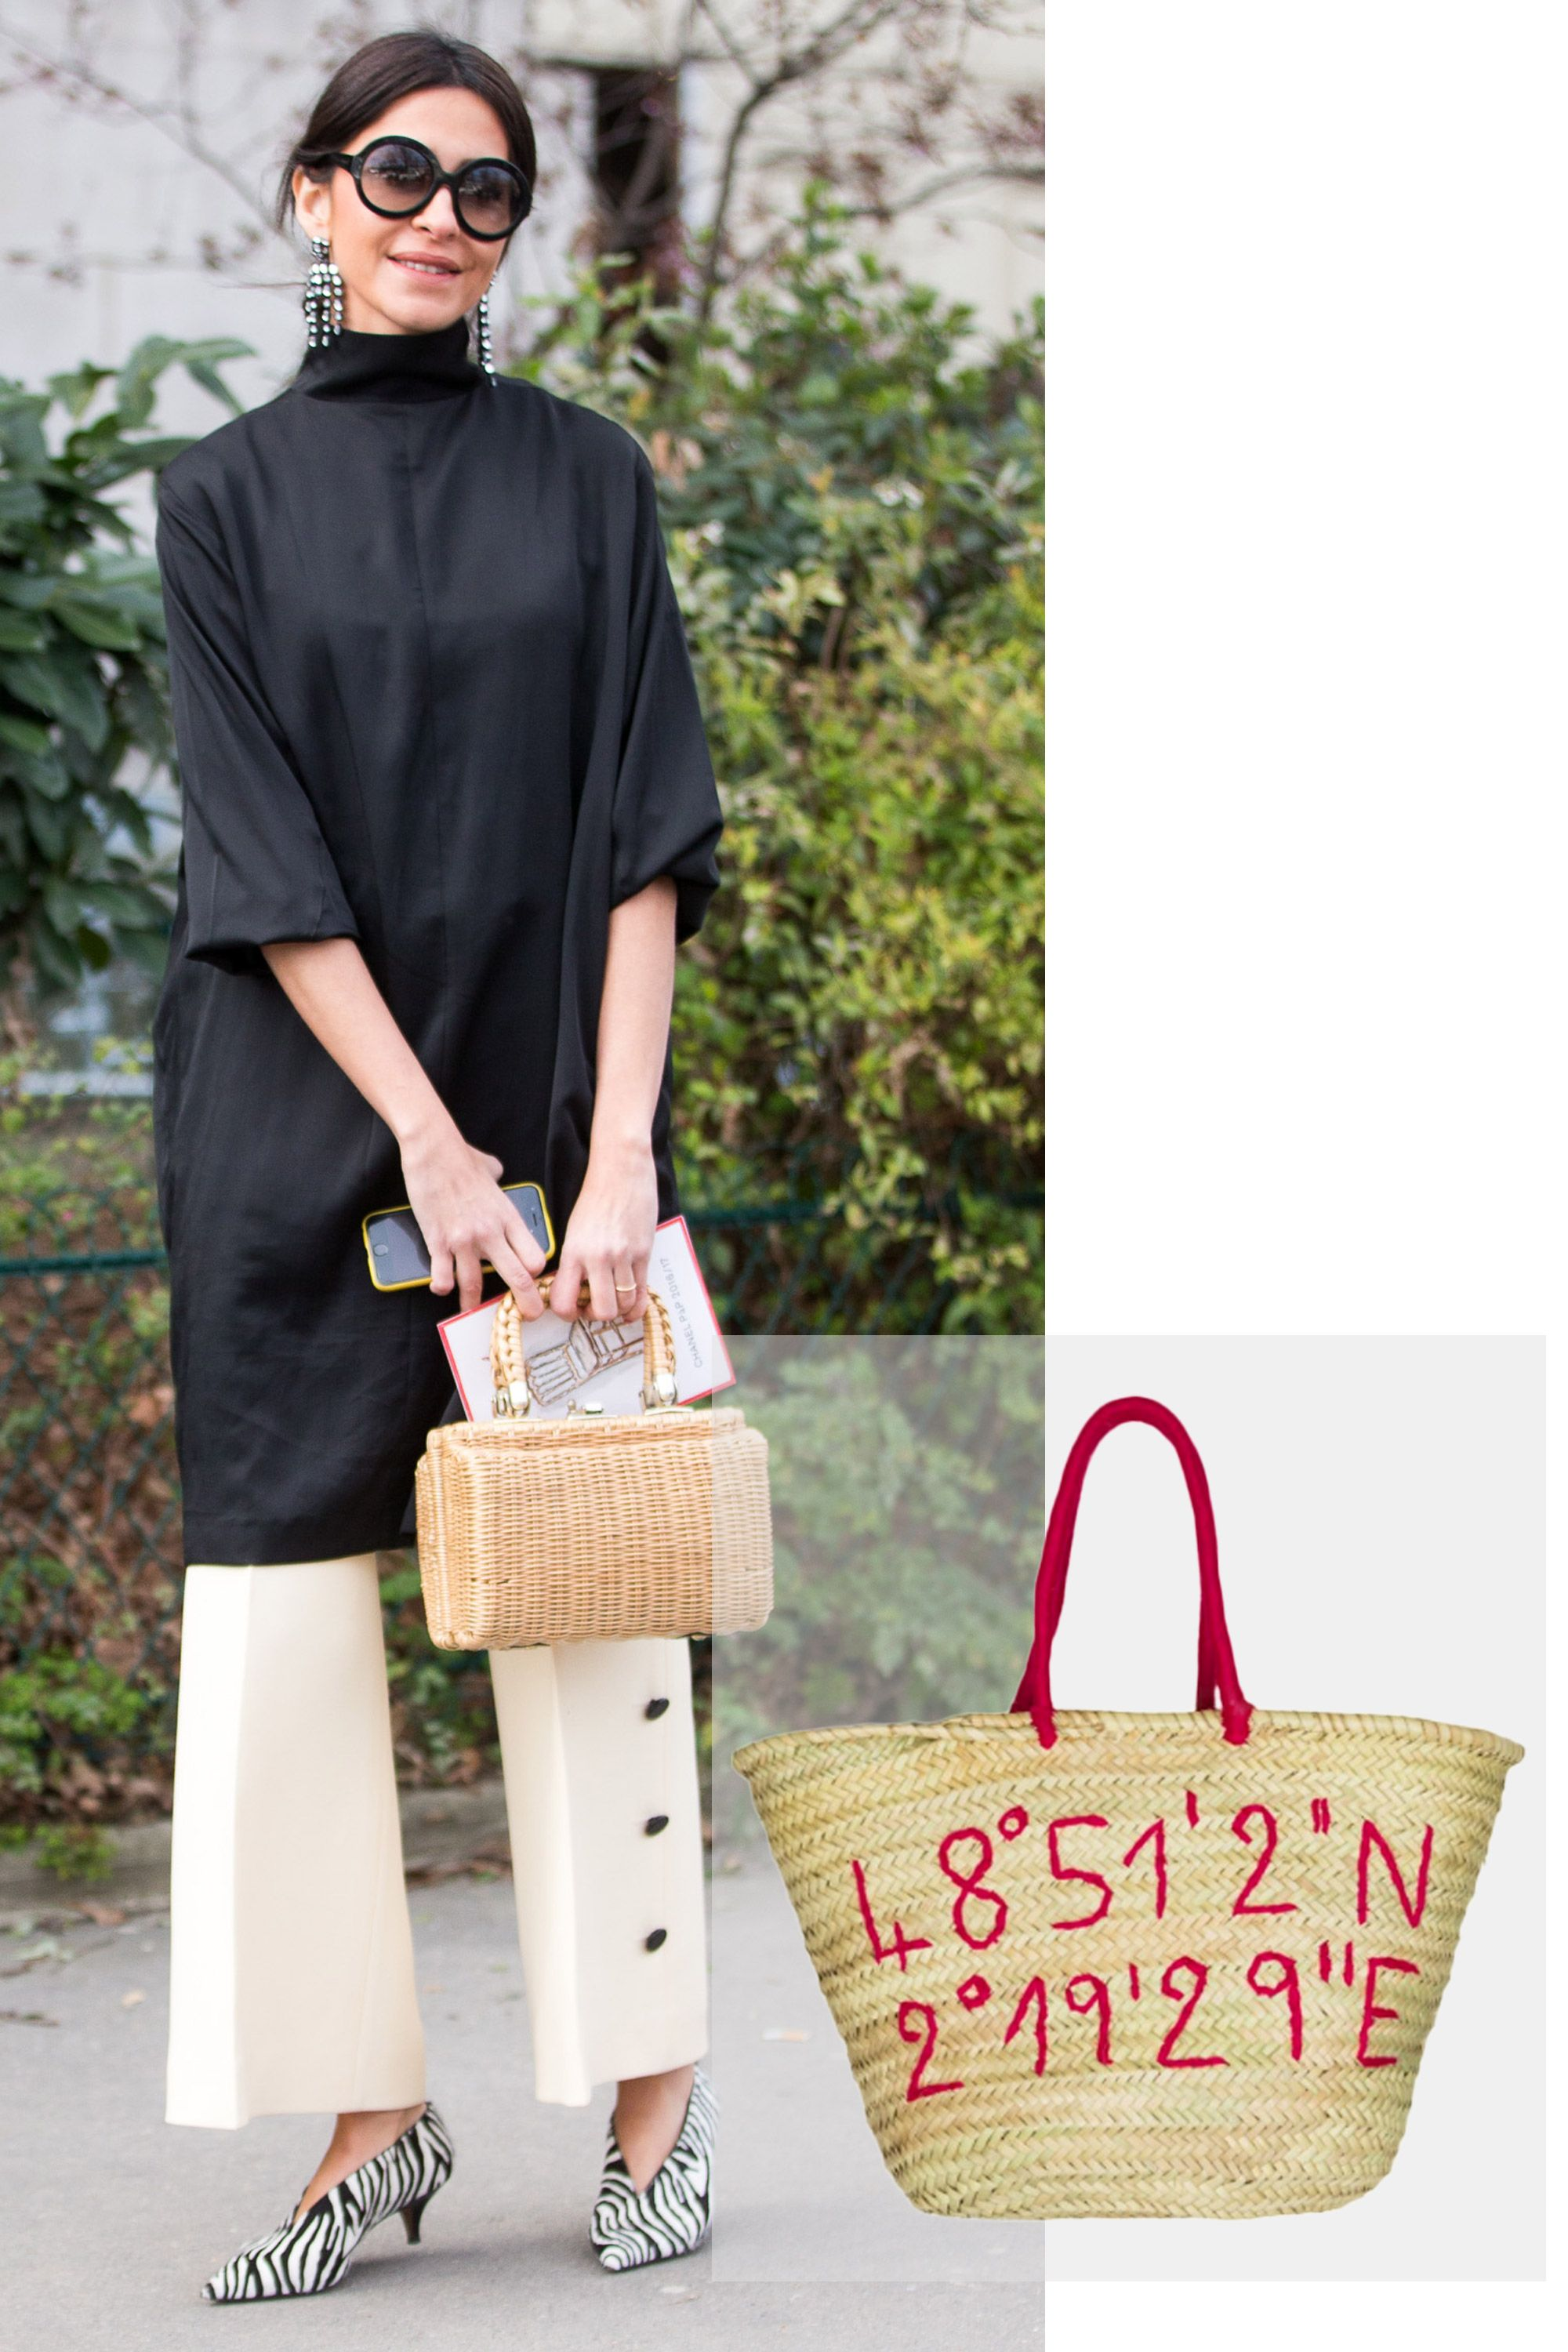 """<p>""""So many cool girls are <a href=""""http://www.elle.com/fashion/g28707/basket-bag-trends/"""" target=""""_blank"""" data-tracking-id=""""recirc-text-link"""">carrying a basket bag</a> á la Jane Birkin this season,"""" according to Paris-based journalist Lauren Bastide. """"It was something you usually witnessed only during summertime, but now they're wearing wearing them in winter, too. That's the way Jane wore it—rain or shine.""""</p><p><em data-redactor-tag=""""em"""">Kilometre GPS Bag, $85&#x3B; </em><a href=""""https://kilometre.paris/collection/gps-basket/"""" target=""""_blank"""" data-tracking-id=""""recirc-text-link""""><em data-redactor-tag=""""em"""">kilometre.paris</em></a></p>"""